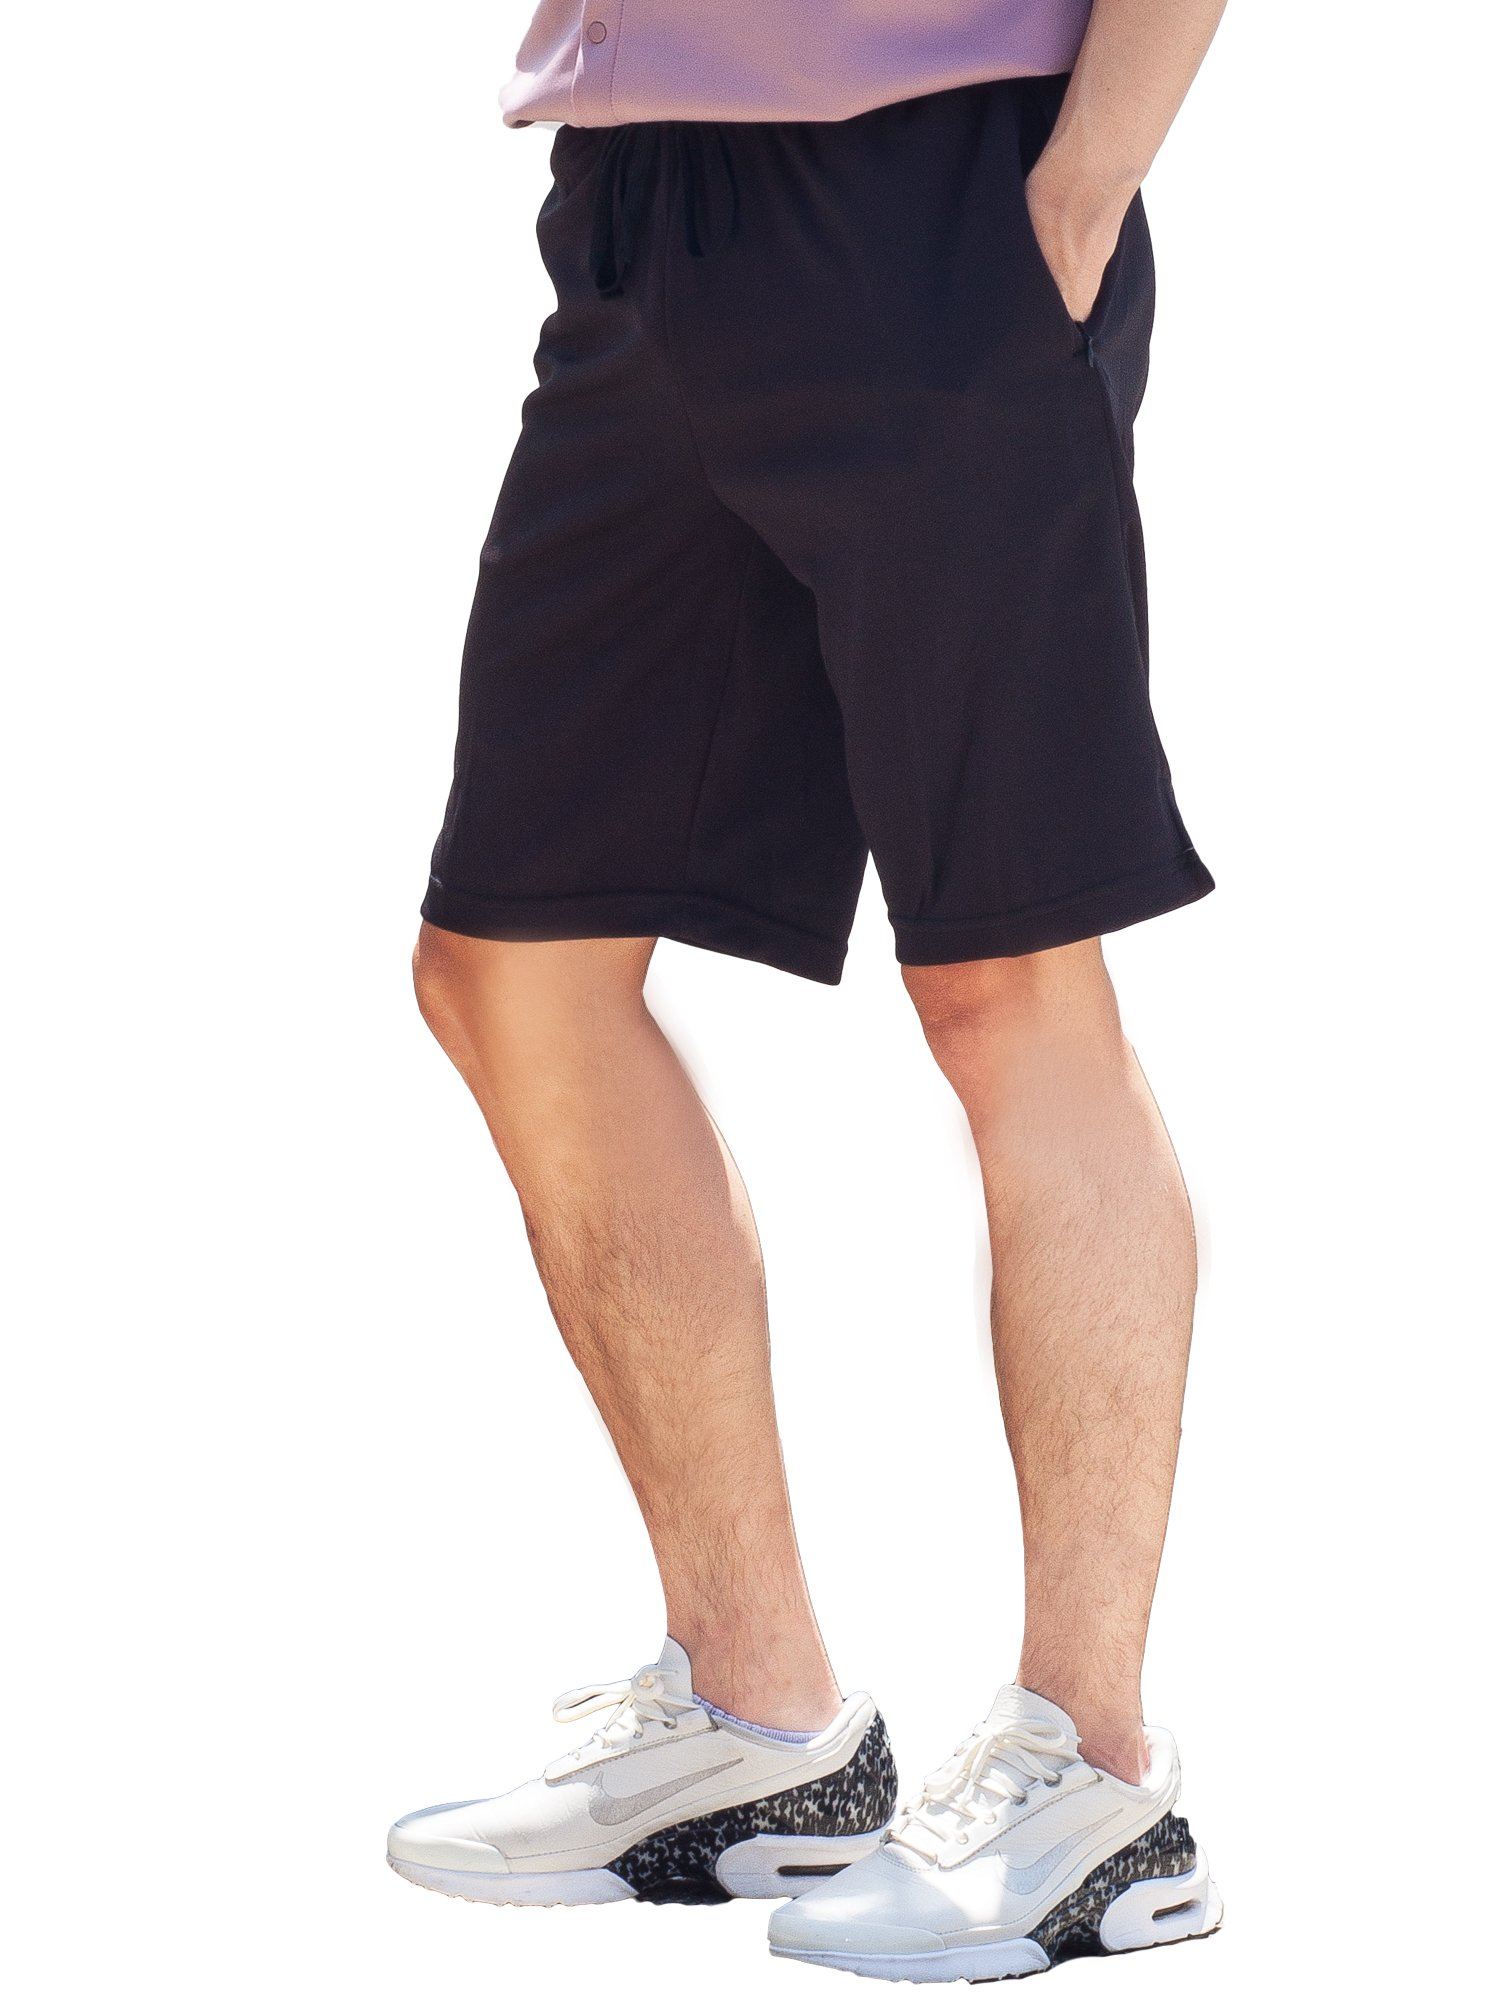 Mens Shorts with Zipper Pockets Quick Dry Travel Shorts (Large, Black)